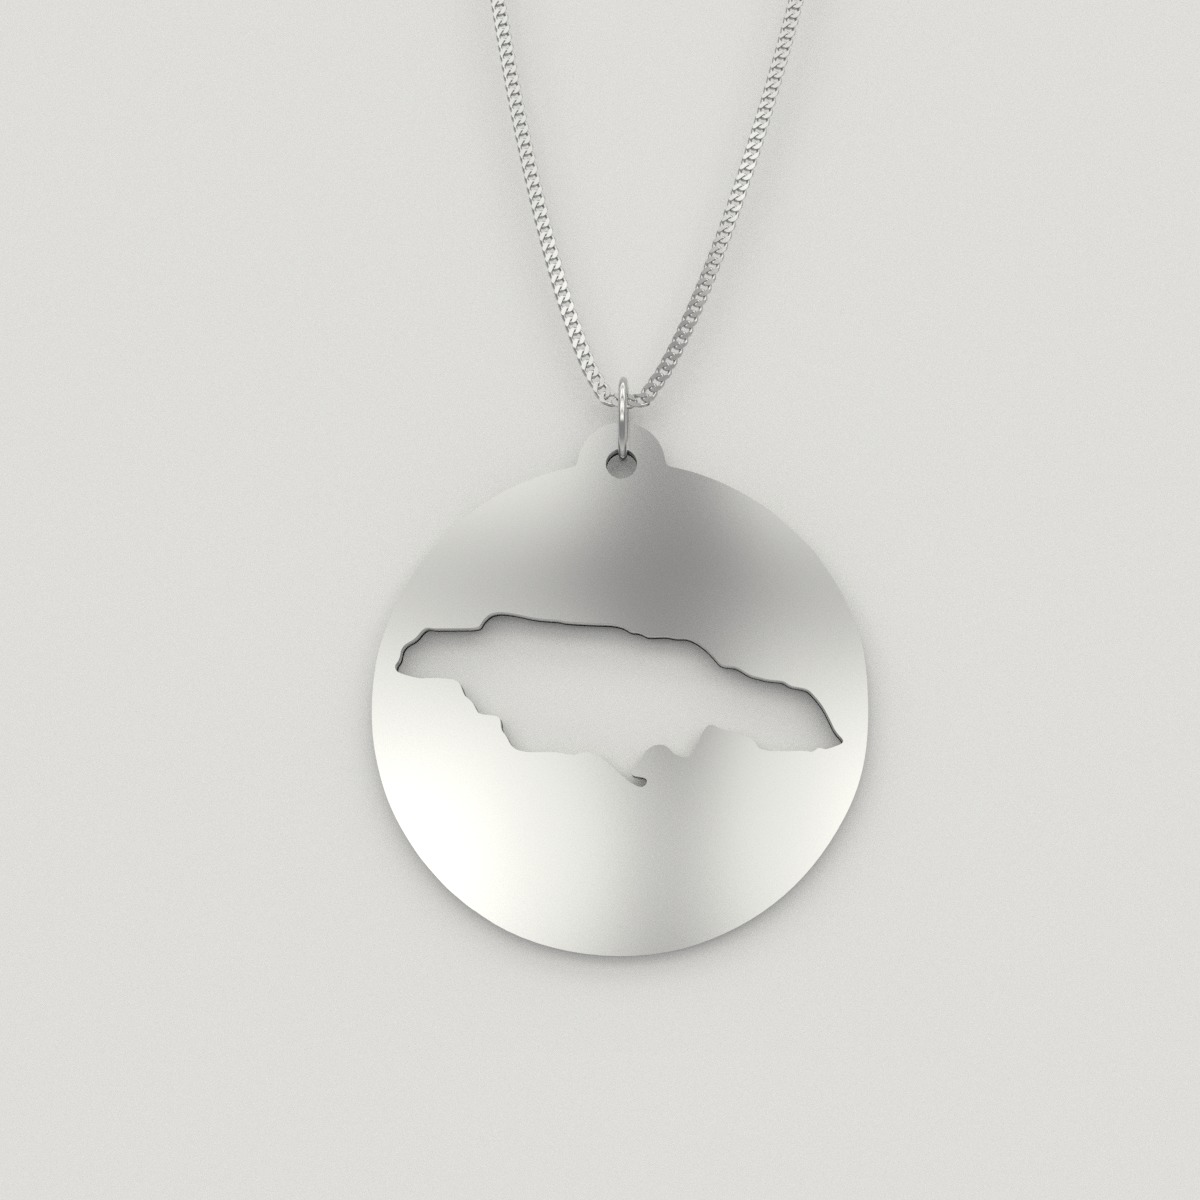 Pendant top view